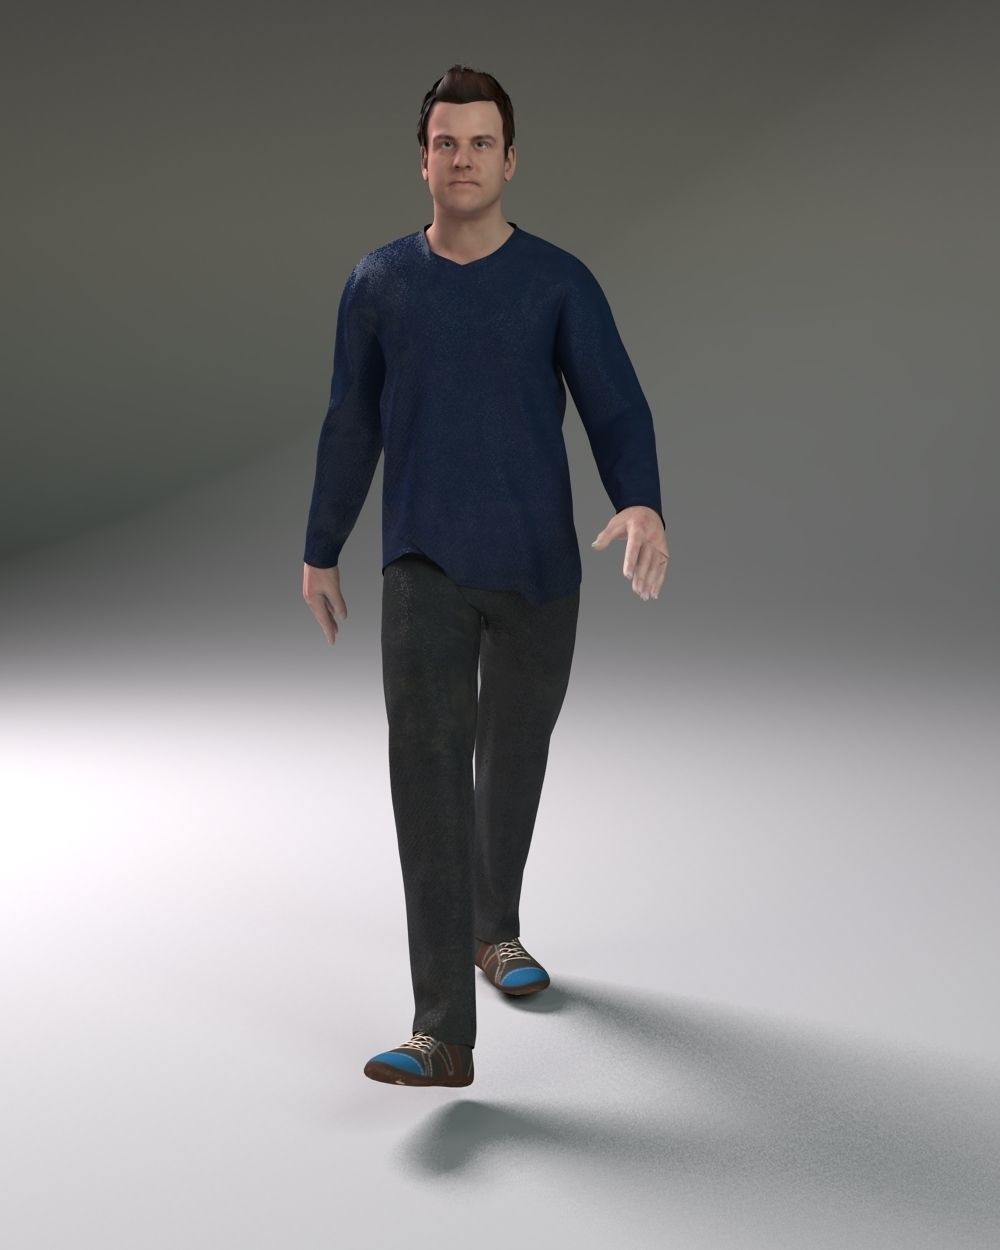 3d Models For Animation Casual Male 3d Model Rigged Animated Fbx Ma Mb 9 3d Models In